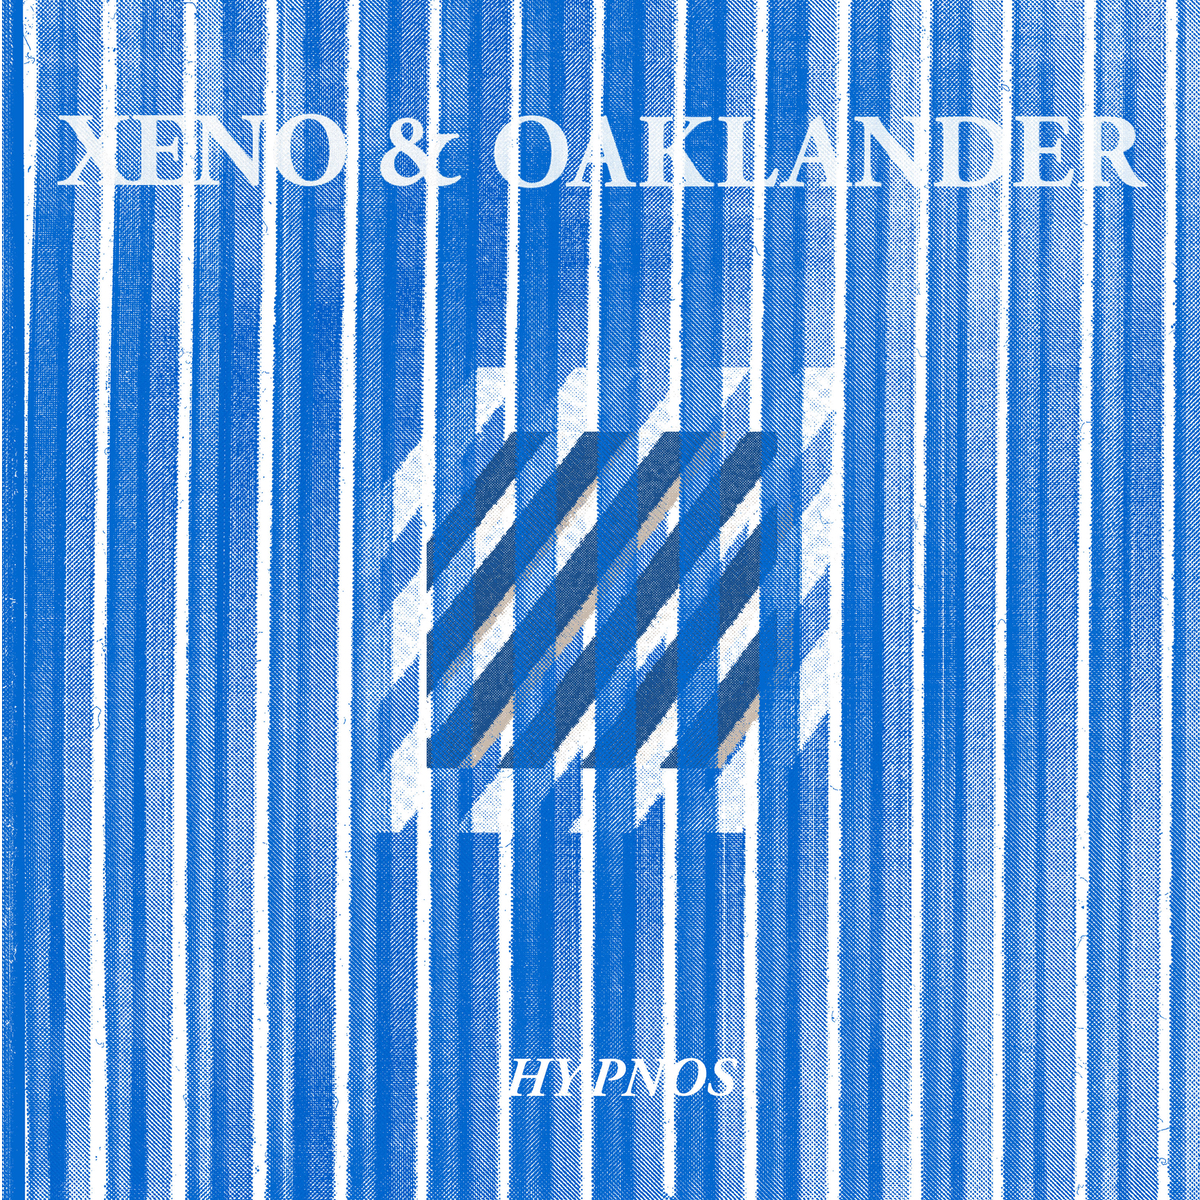 Xeno & Oaklander debut on Dais with new album Hypnos